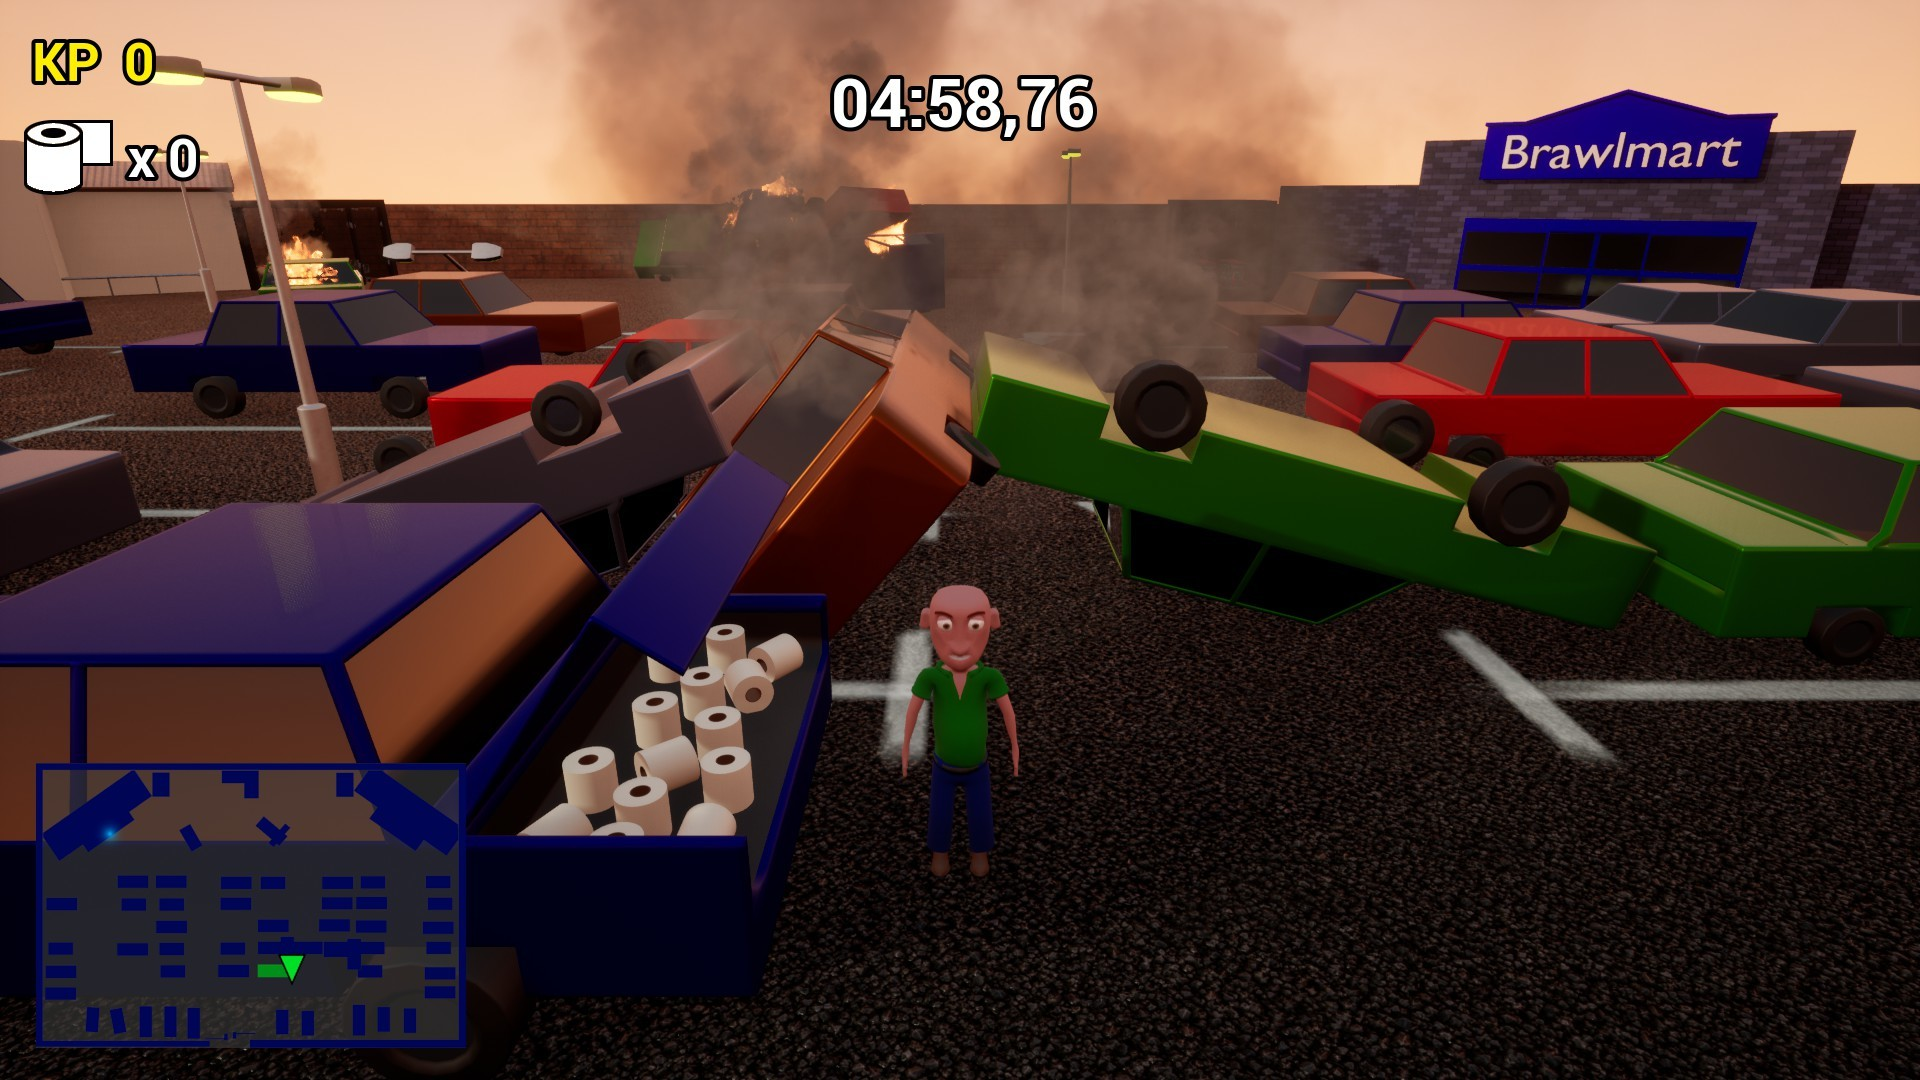 Toilet Paper Crisis Simulator 2020 screenshot